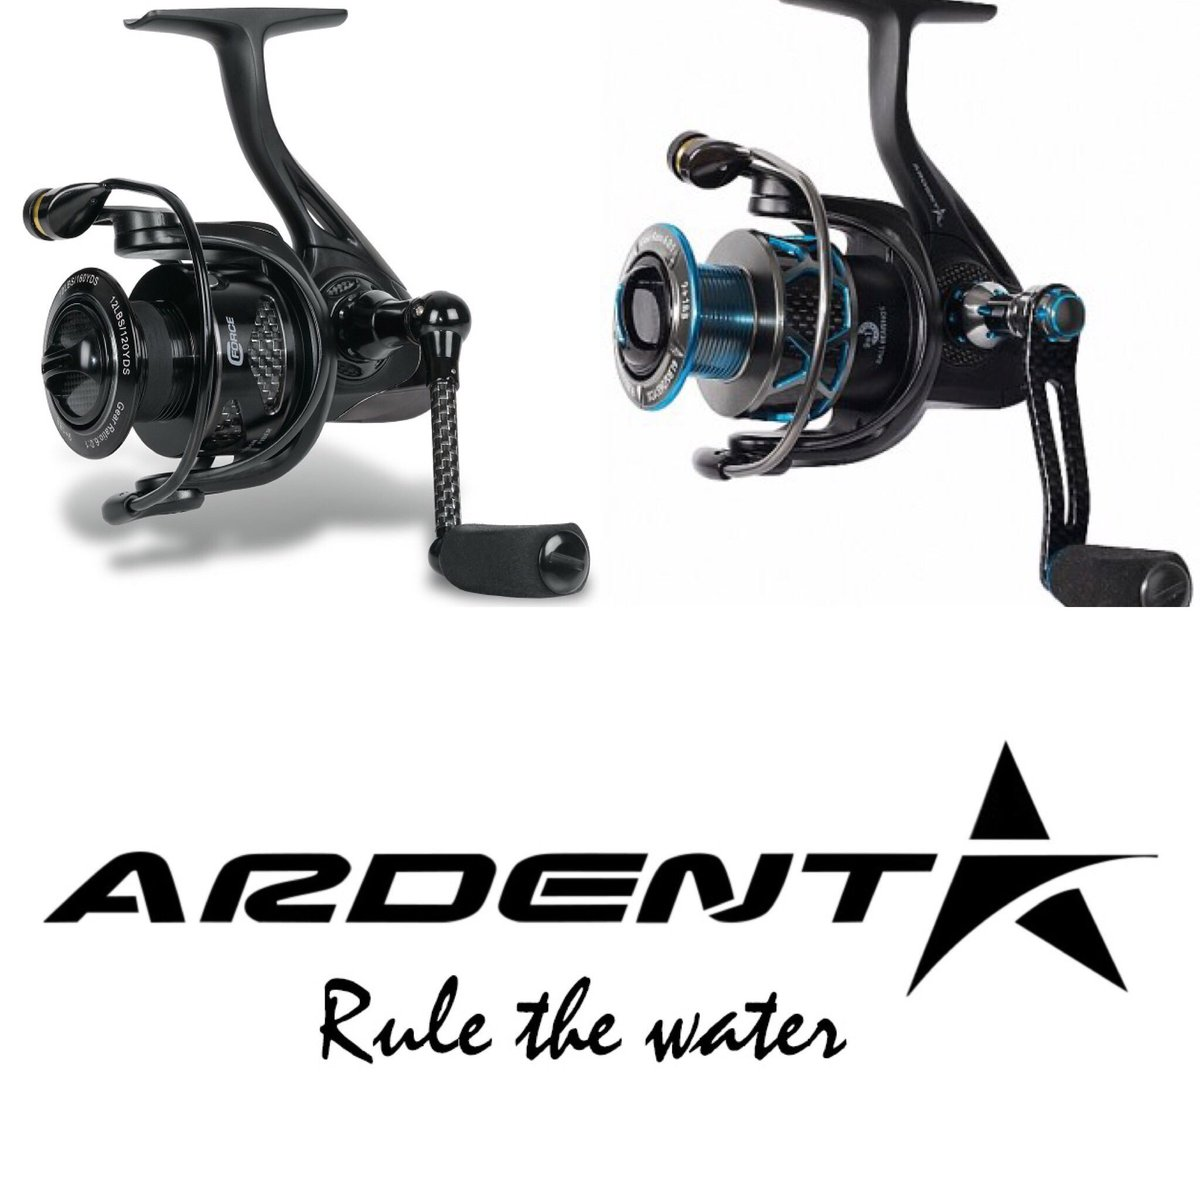 Ardent reels ardentreels twitter for Ardent fishing reels